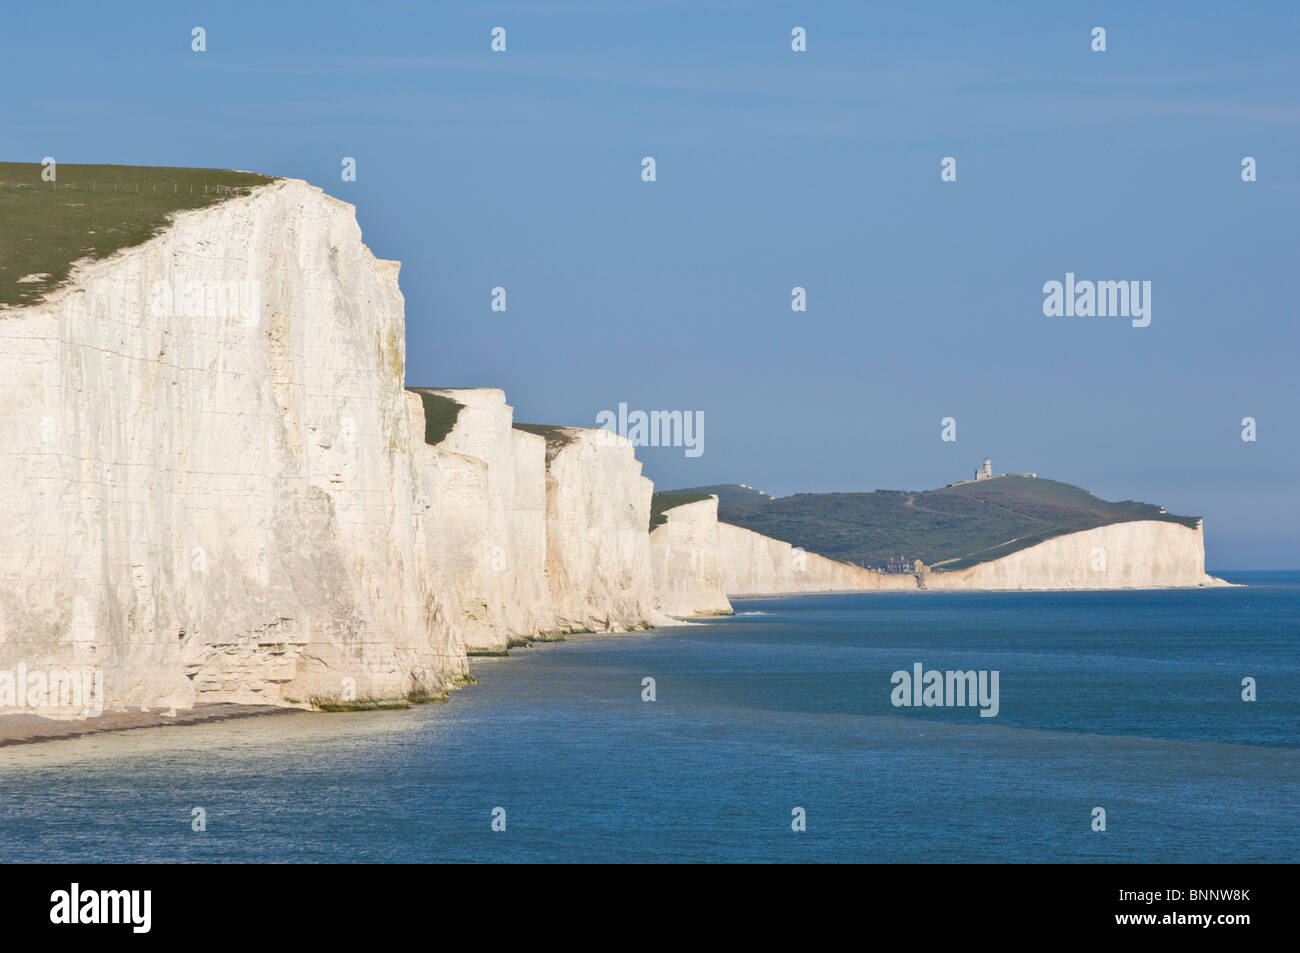 View of The Seven Sisters cliffs, South Downs Way, South Downs National Park, East Sussex, England, UK, GB, EU, - Stock Image